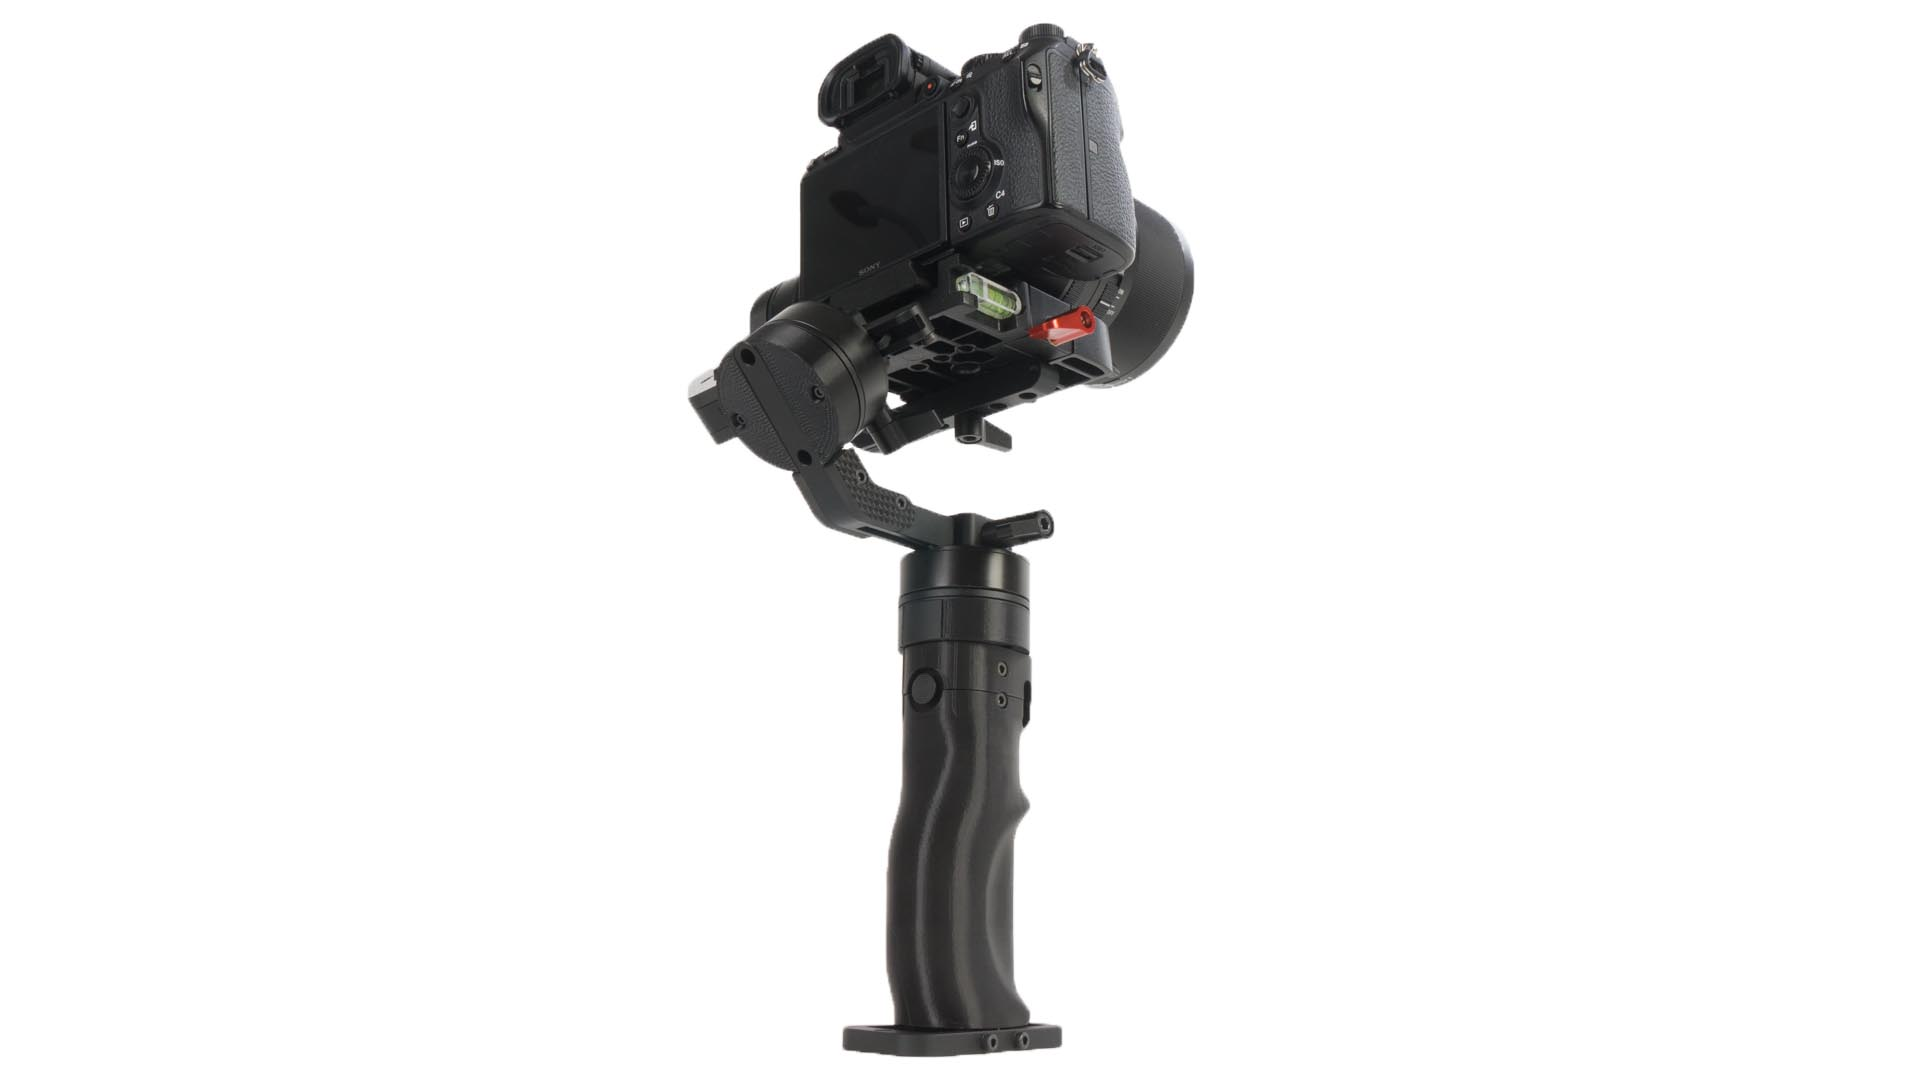 icecam gimbal tiny 3 vision 6